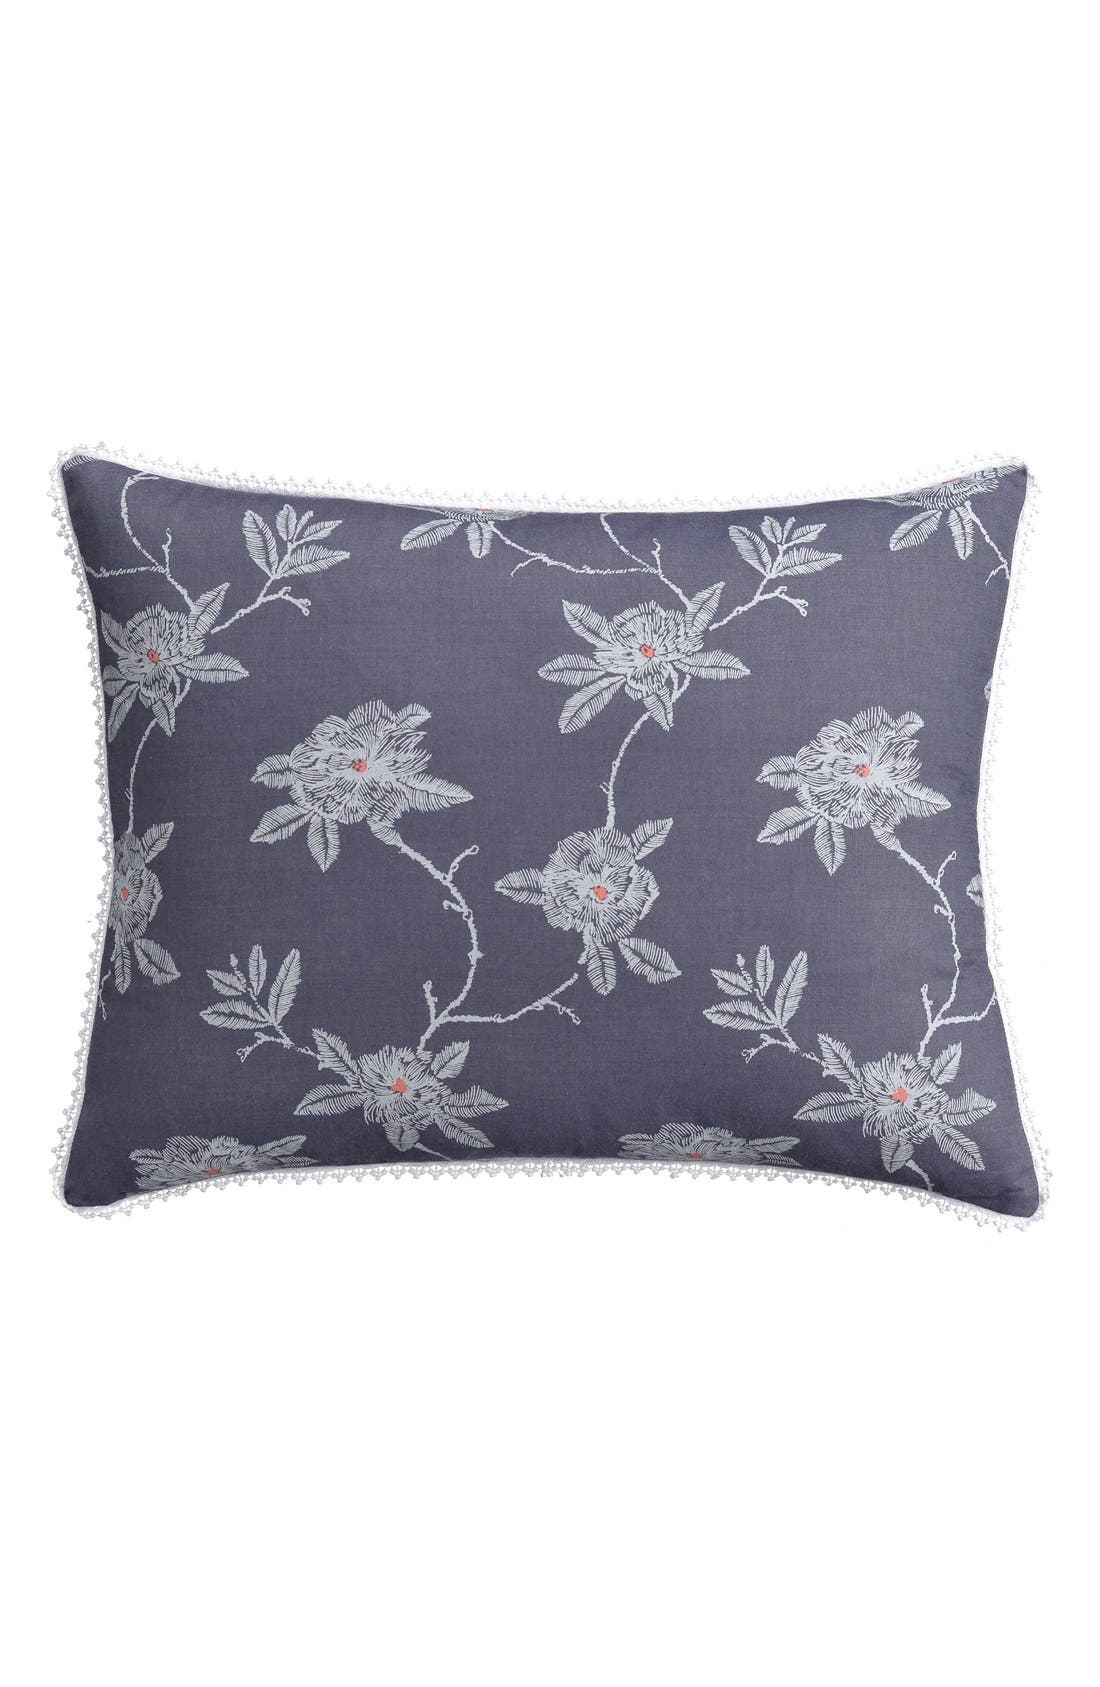 Alternate Image 1 Selected - cupcakes and cashmere 'Sketch' Floral Print Sham